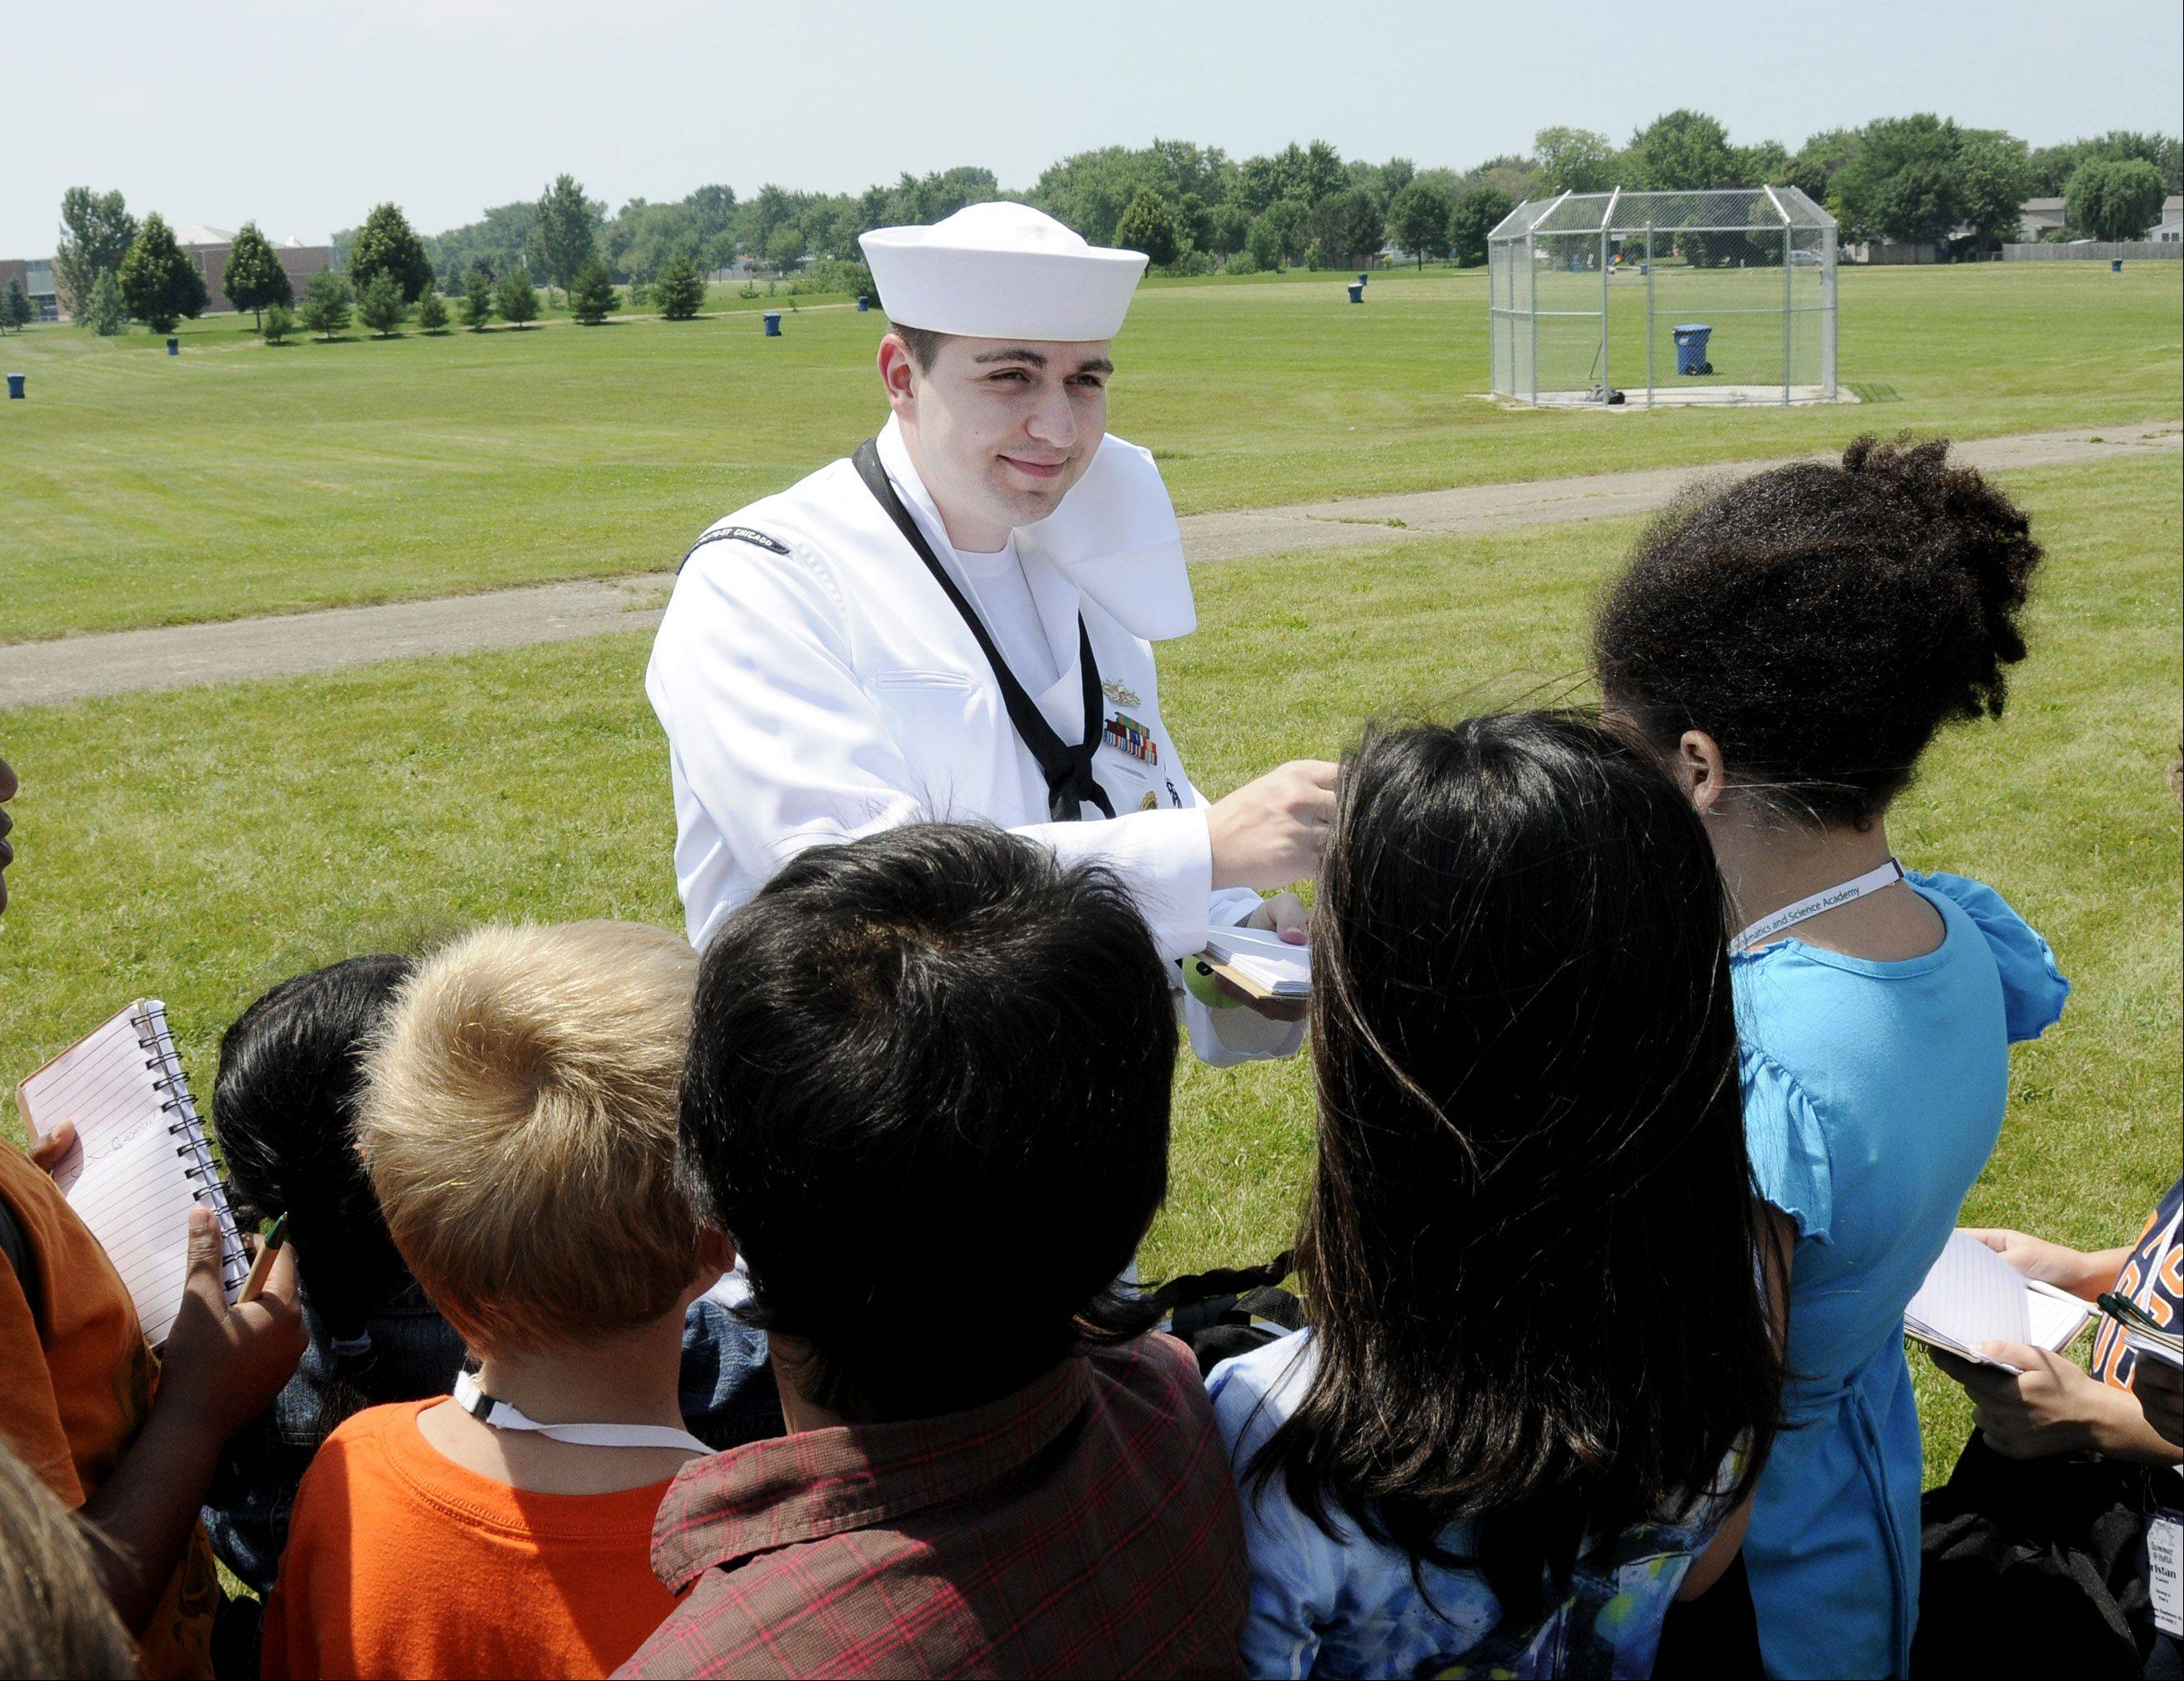 Navy personnel, including recruiter Raul Mot, visited the summer camp at IMSA in Aurora Thursday to talk about the Navy, sign autographs, and have fun with the kids.